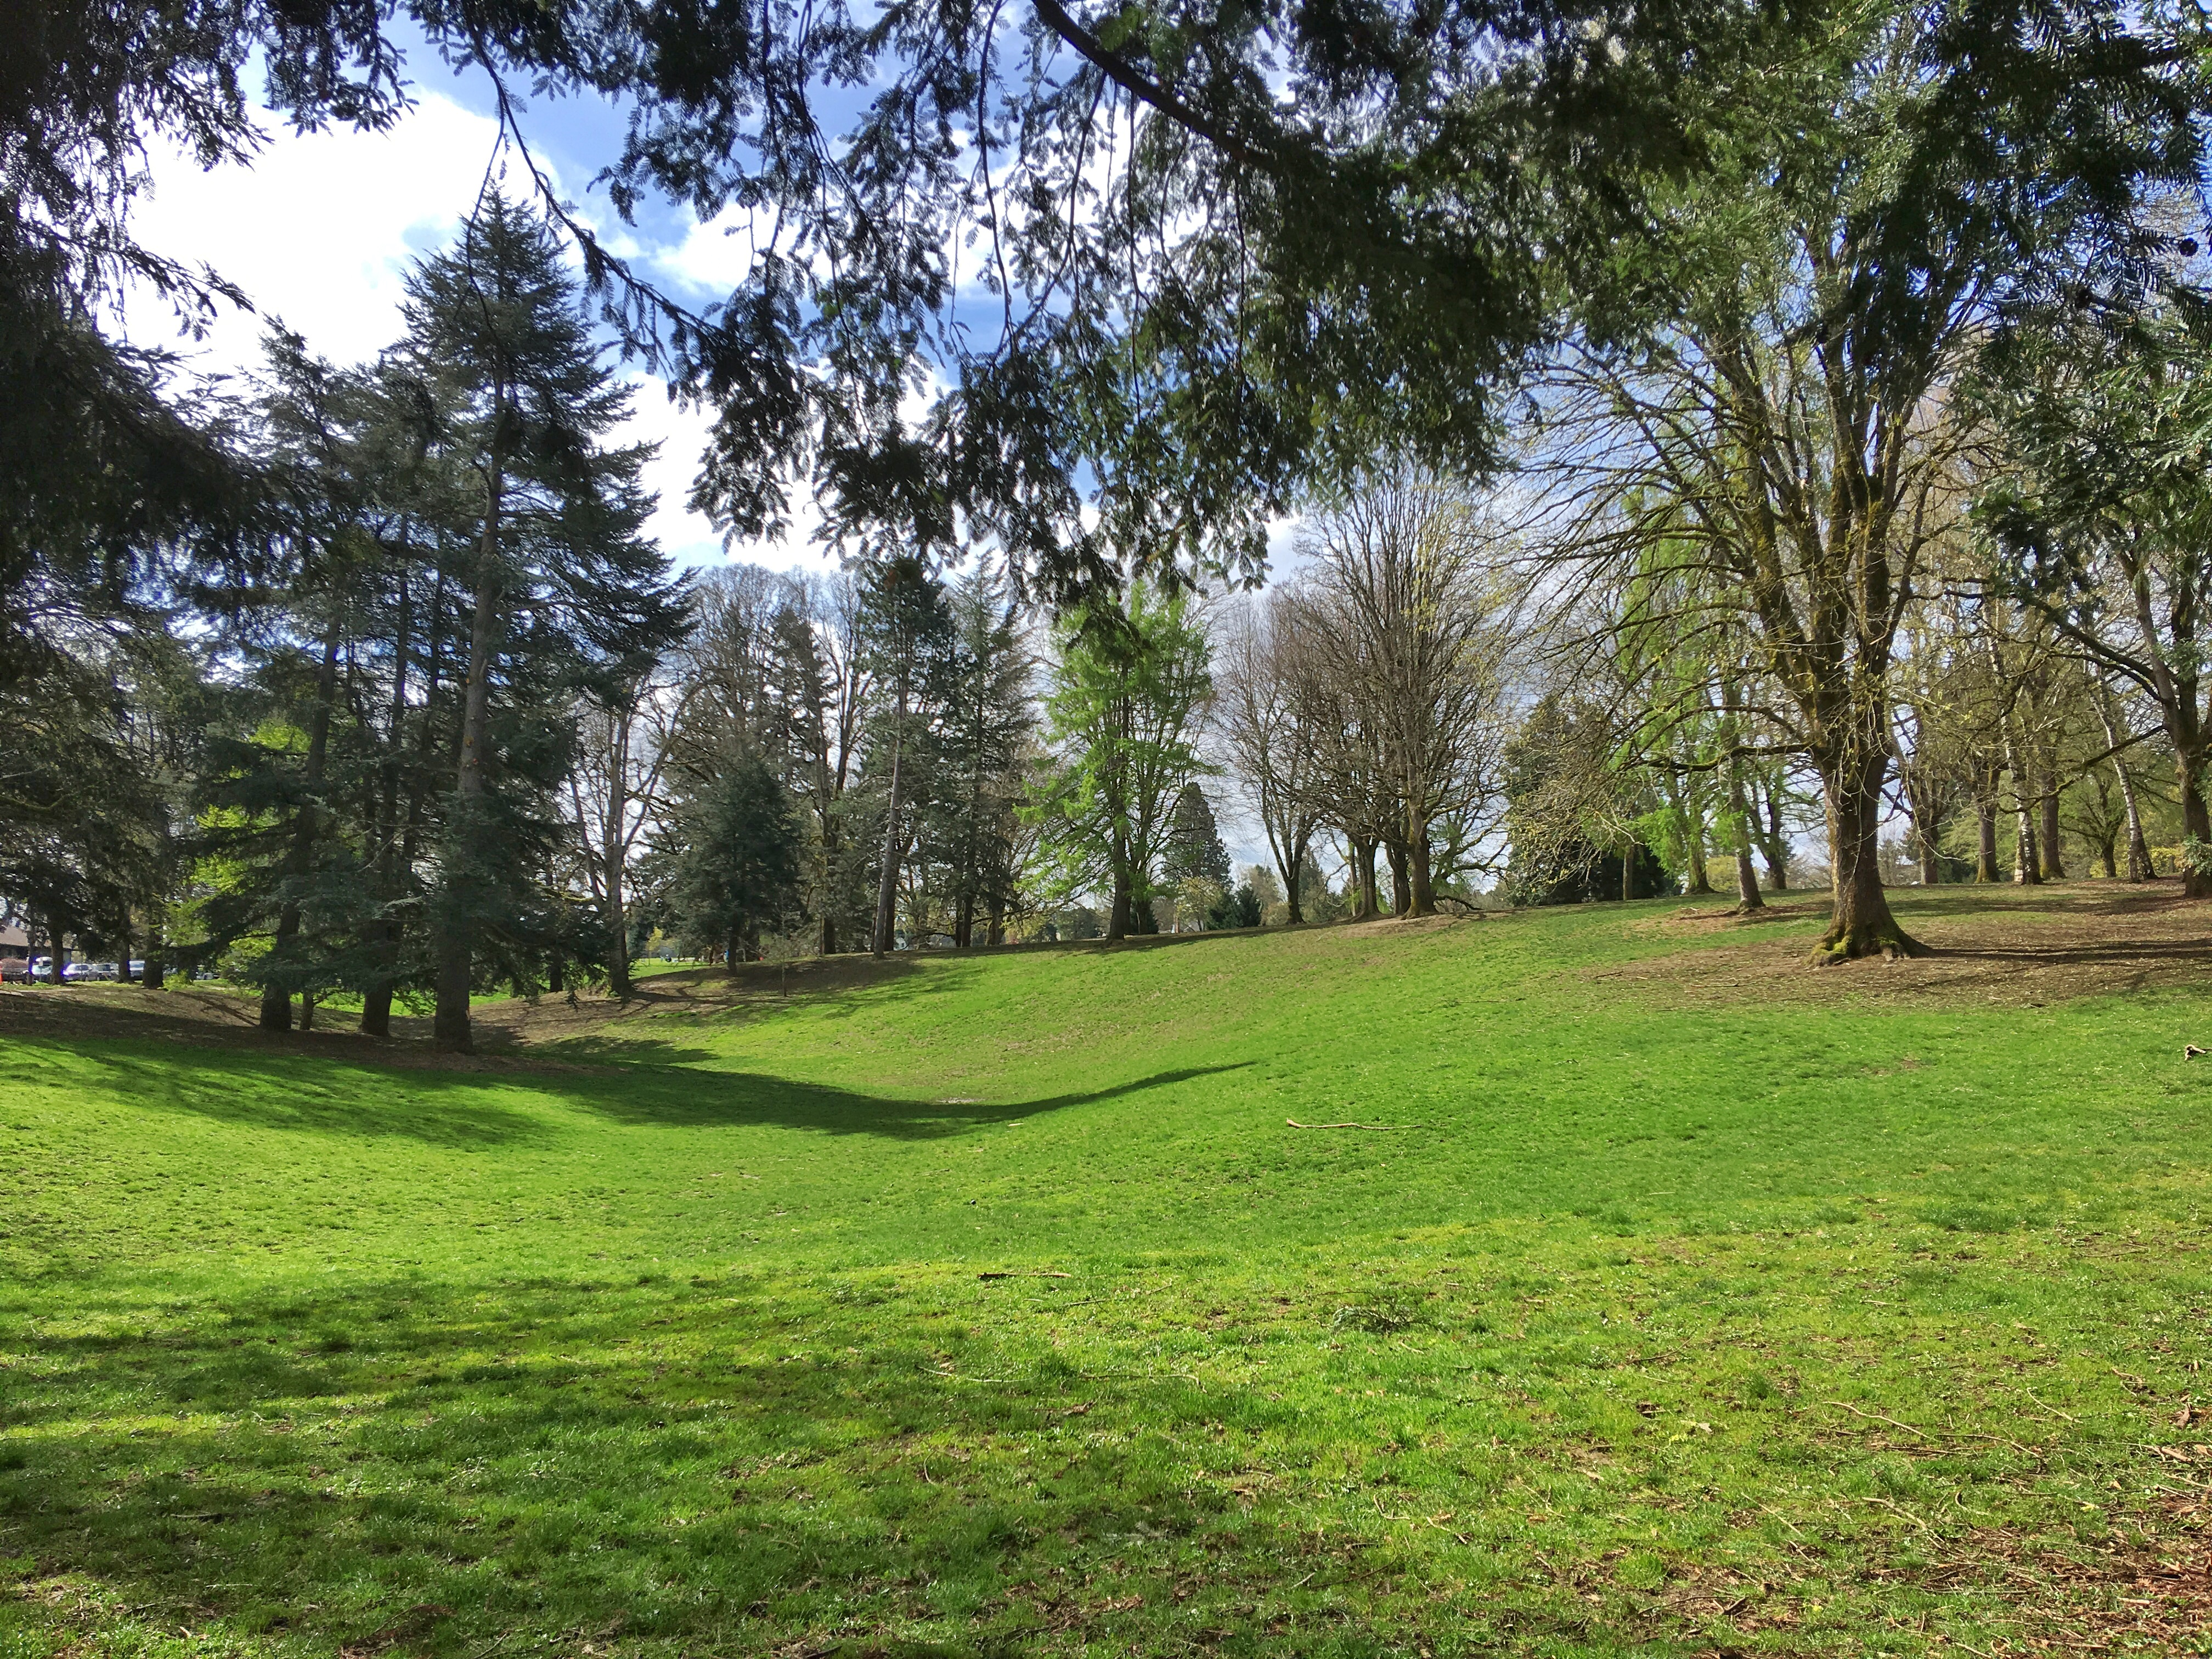 Fernhill Park From Wild Thicket To Popular Neighborhood Park